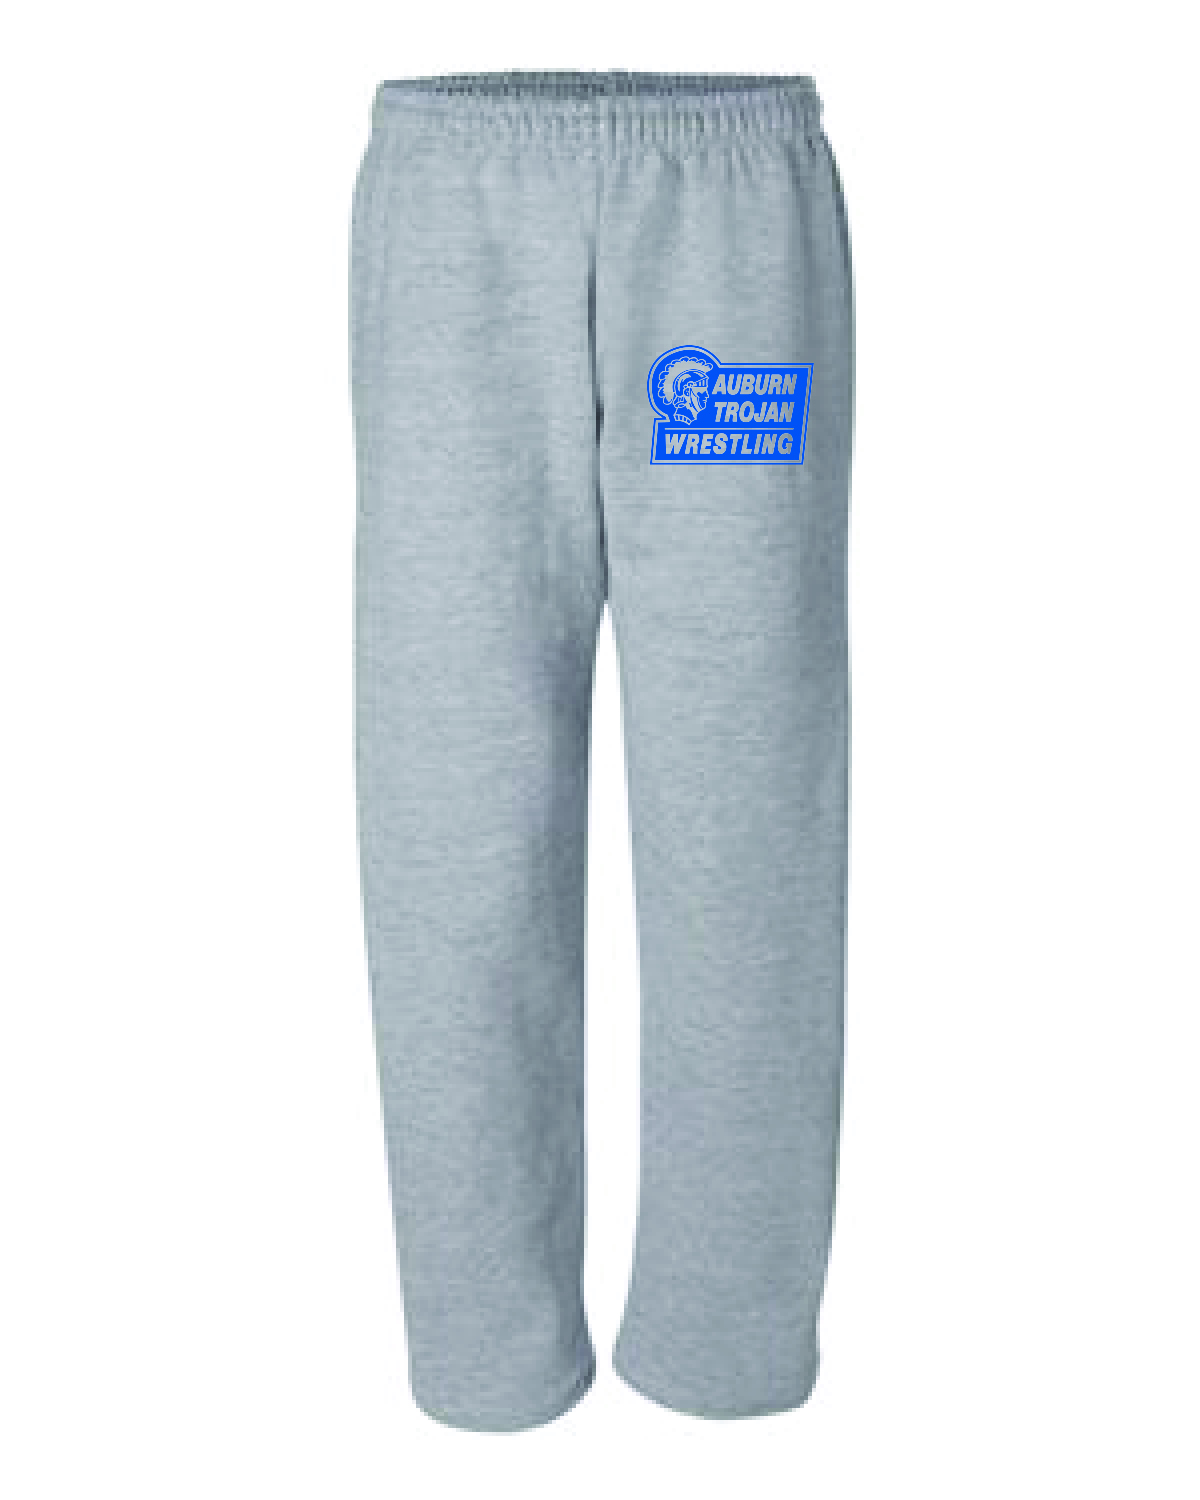 WRESTLING Gildan Open-Bottom Sweatpants with Pockets (MENS) GRAY